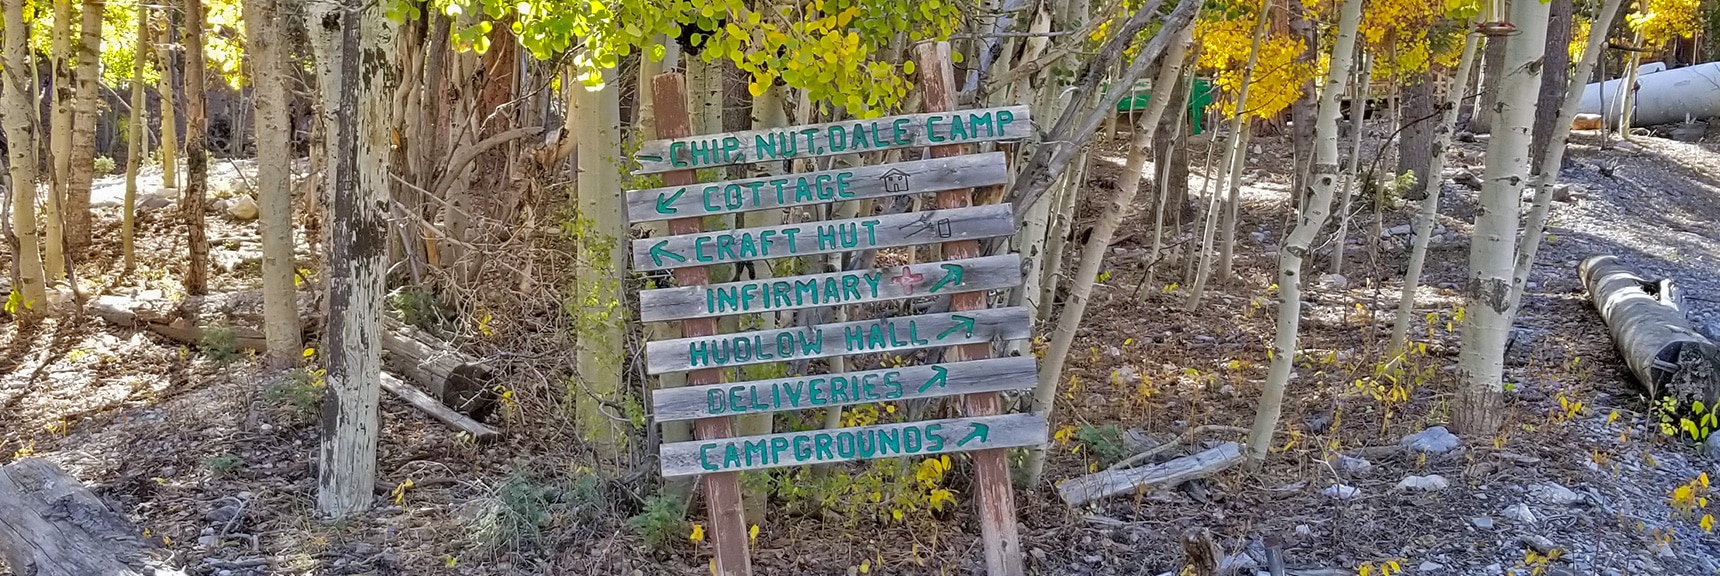 Camp Foxtail Girl Scouts Camp Directional Signs   Foxtail Canyon   Foxtail Girl Scouts Camp   Mt Charleston Wilderness   Spring Mountains, Nevada